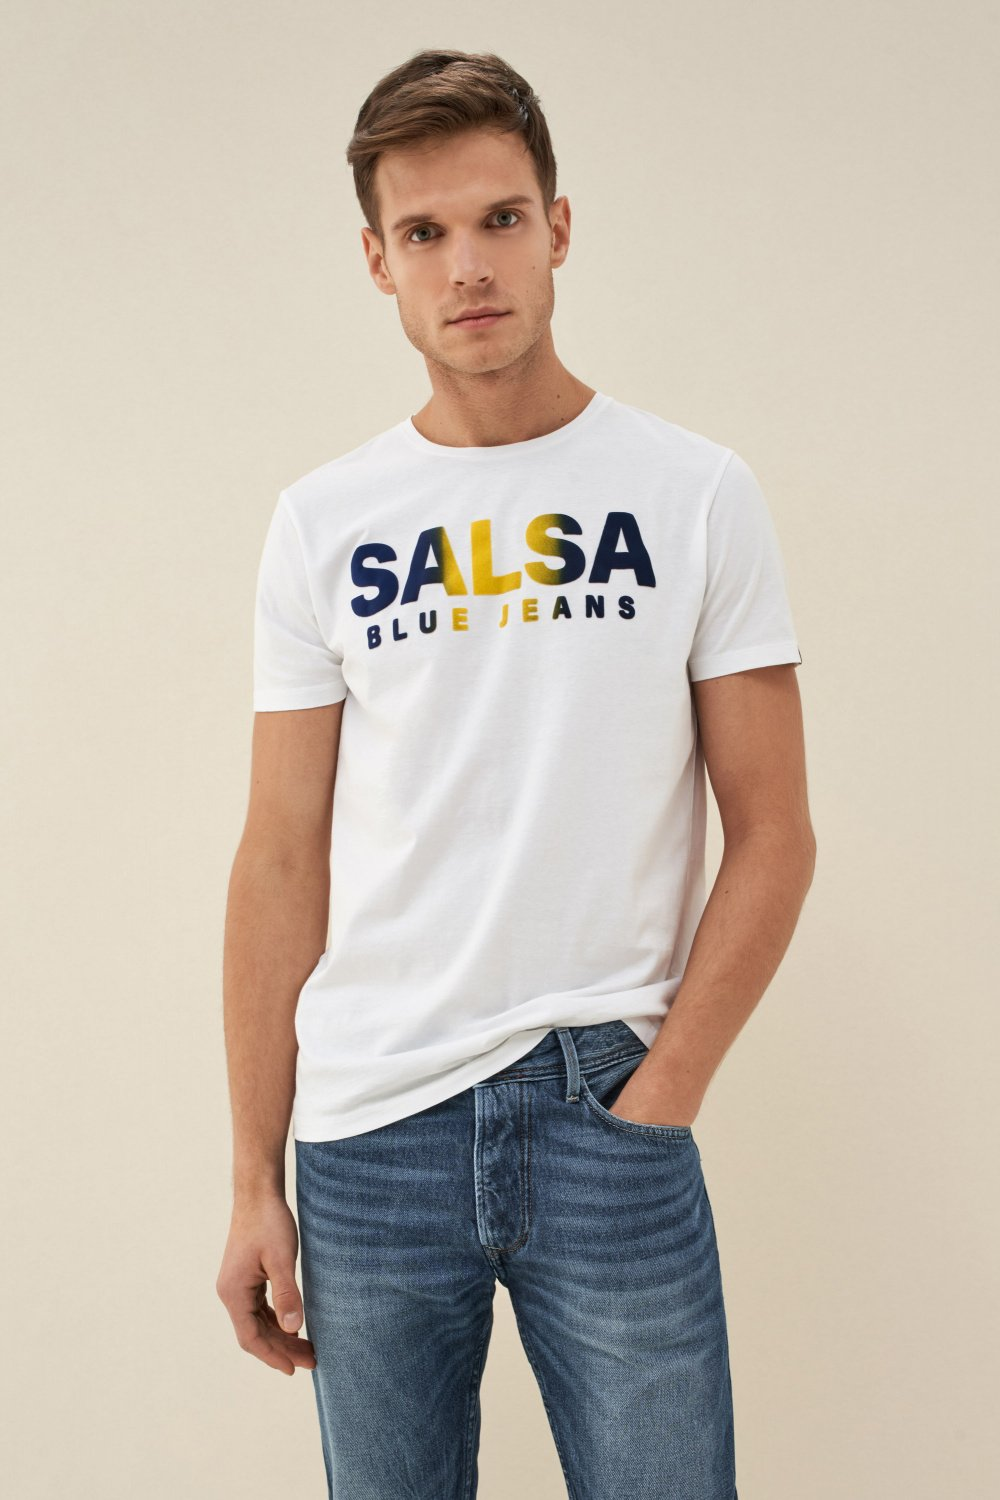 Gradient t-shirt with logo - Salsa